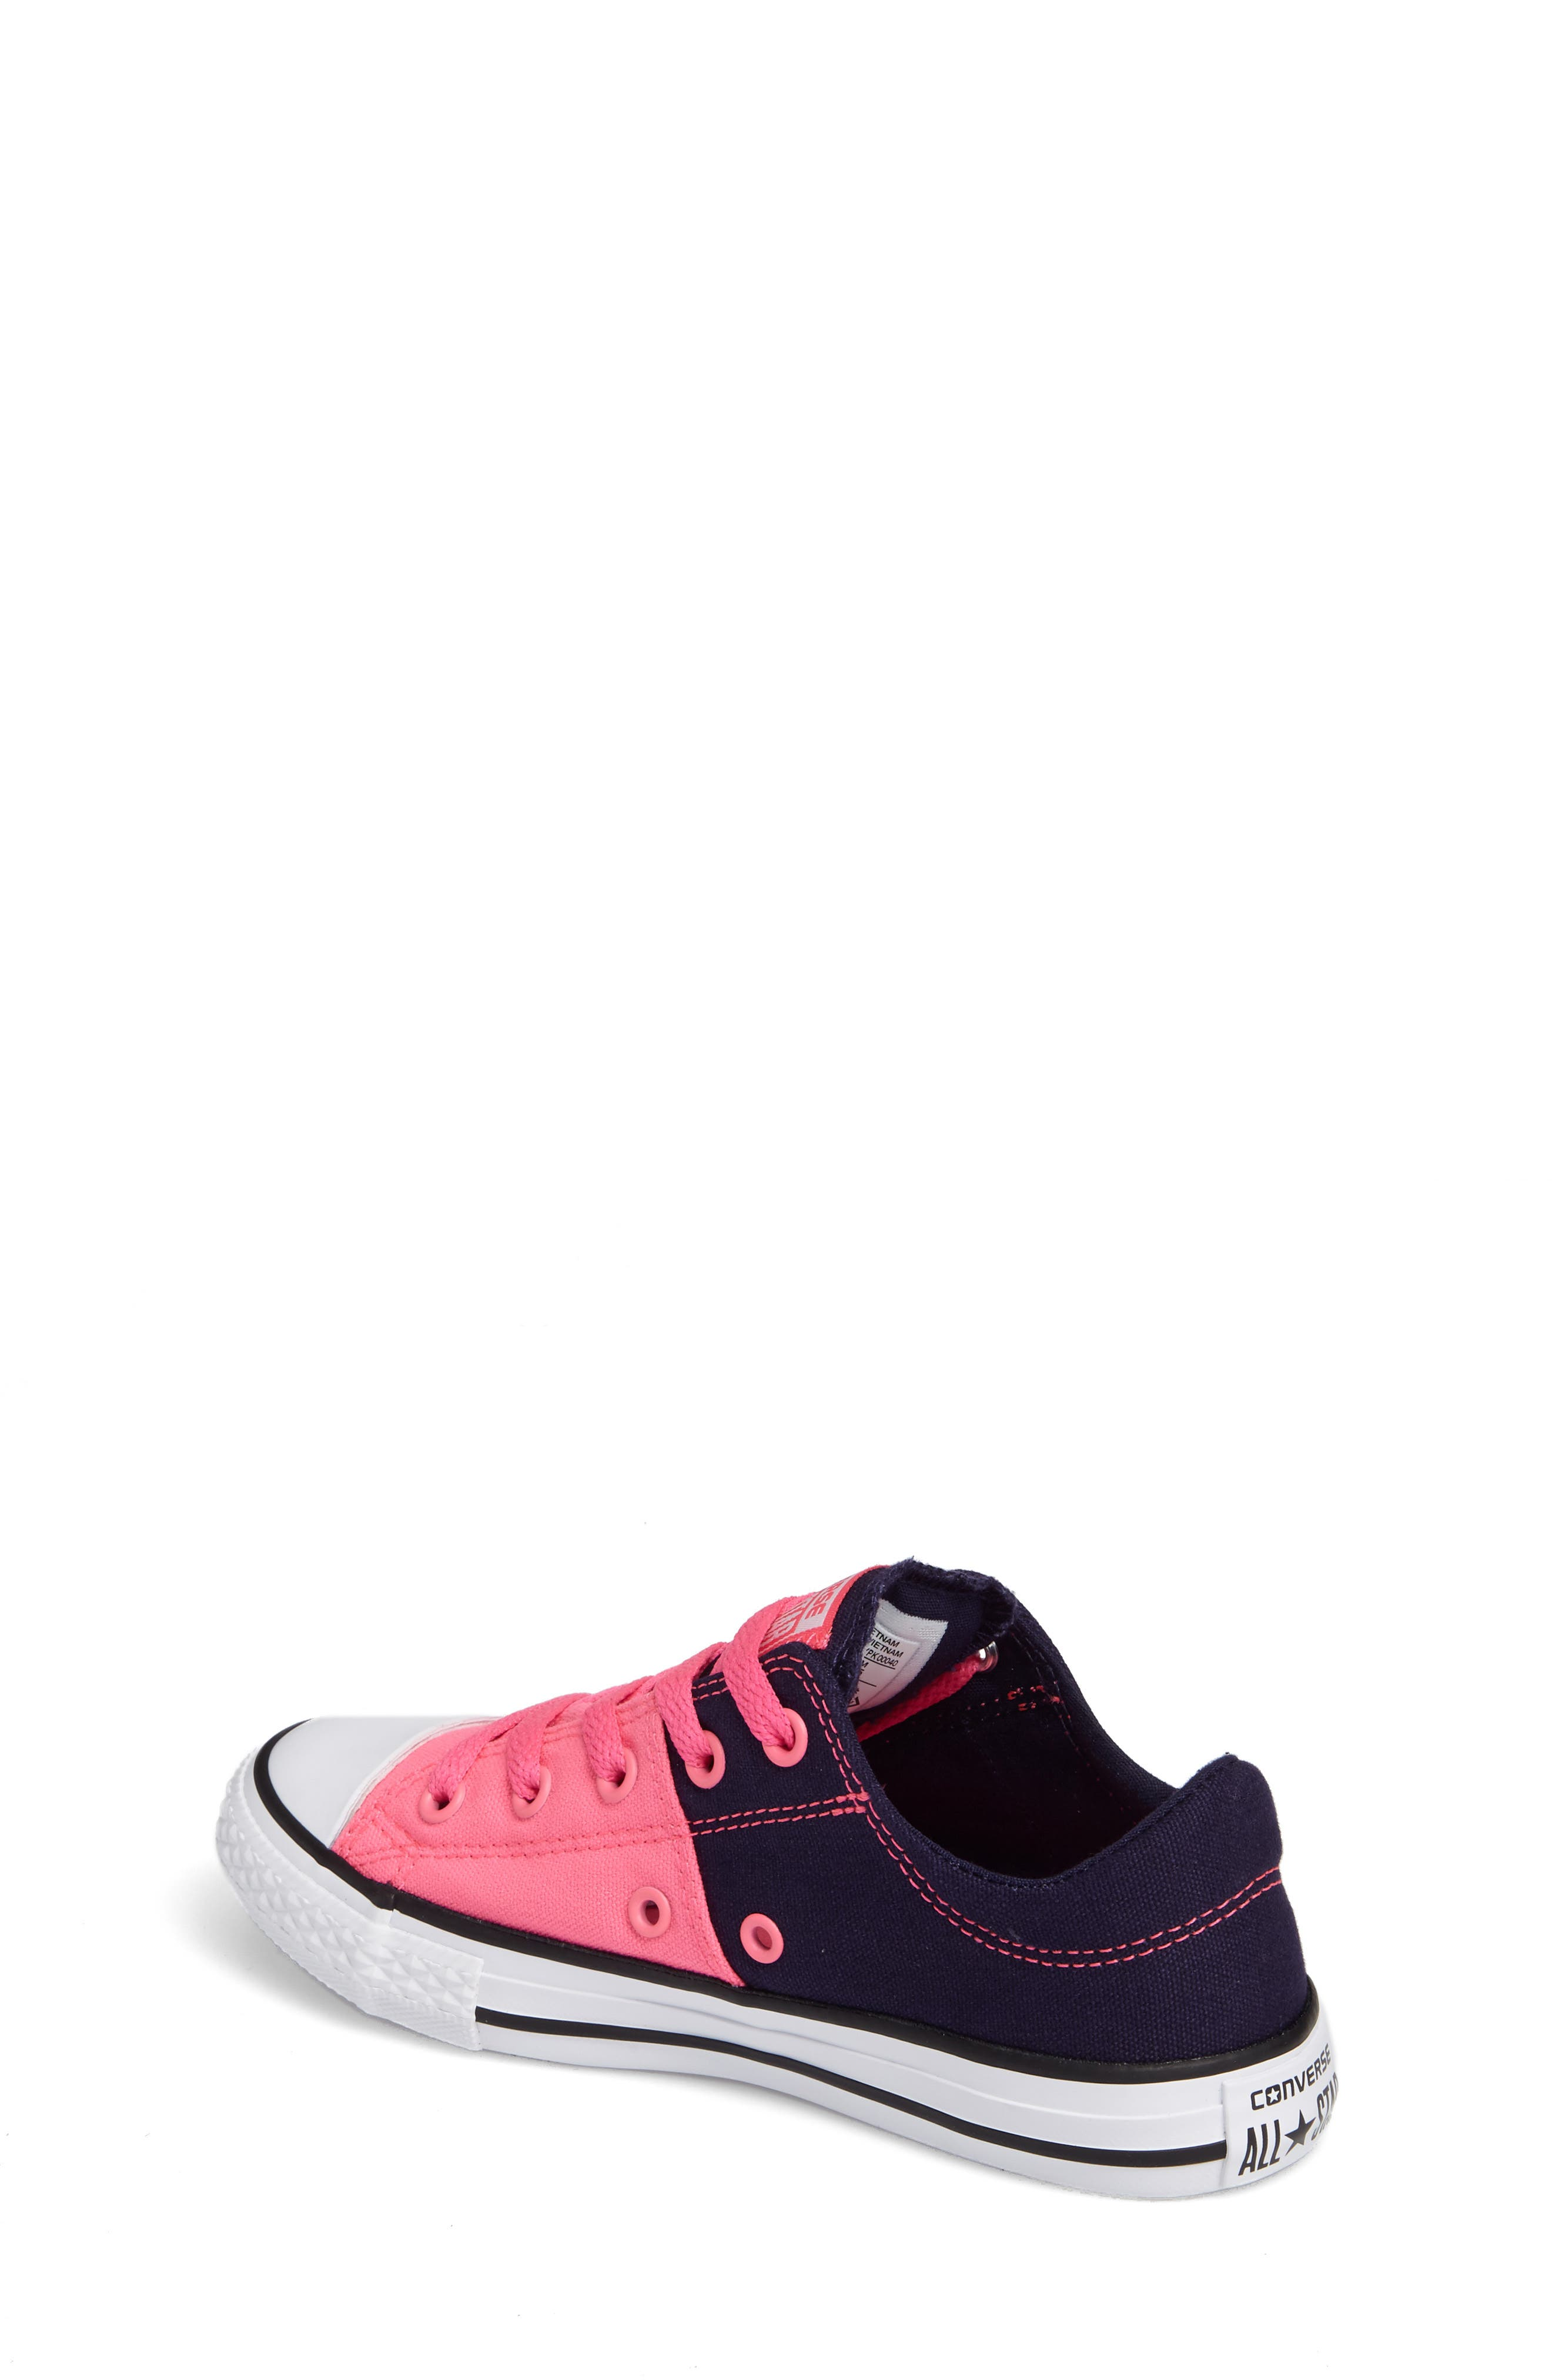 Chuck Taylor<sup>®</sup> All Star<sup>®</sup> Madison Low Top Sneaker,                             Alternate thumbnail 9, color,